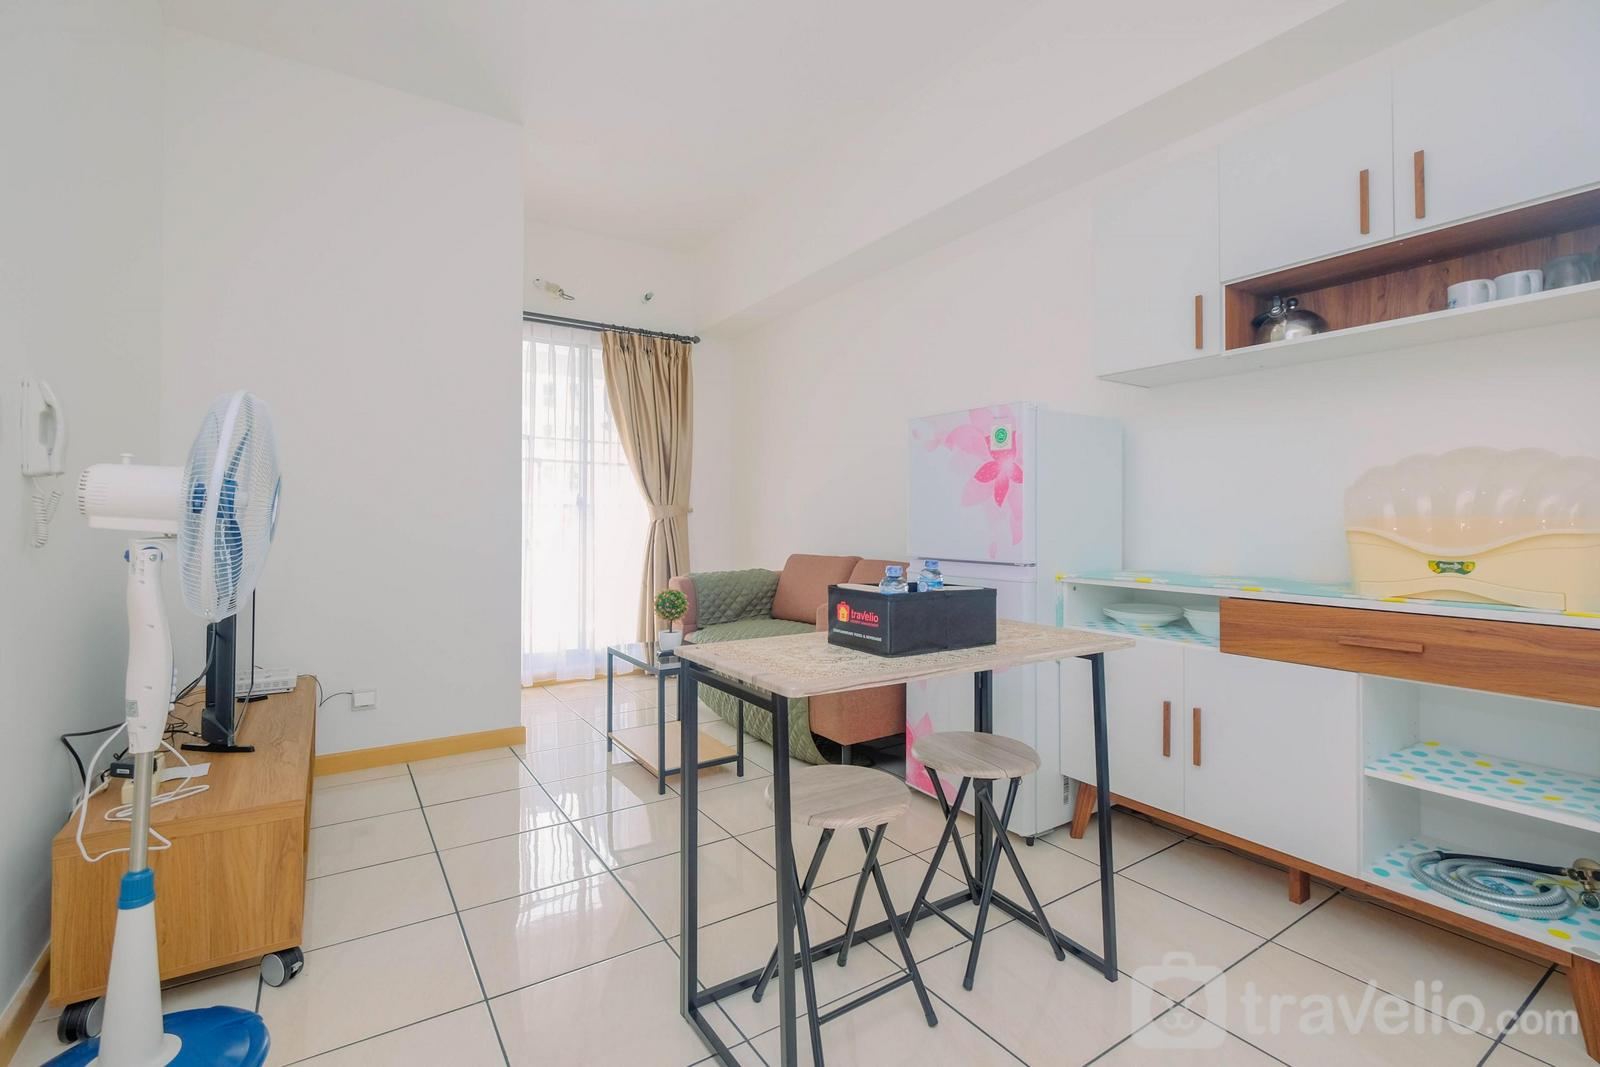 Apartemen M-Town Residence - Simply Furnished and Comfy 2BR Apartment @ M-Town Residences By Travelio